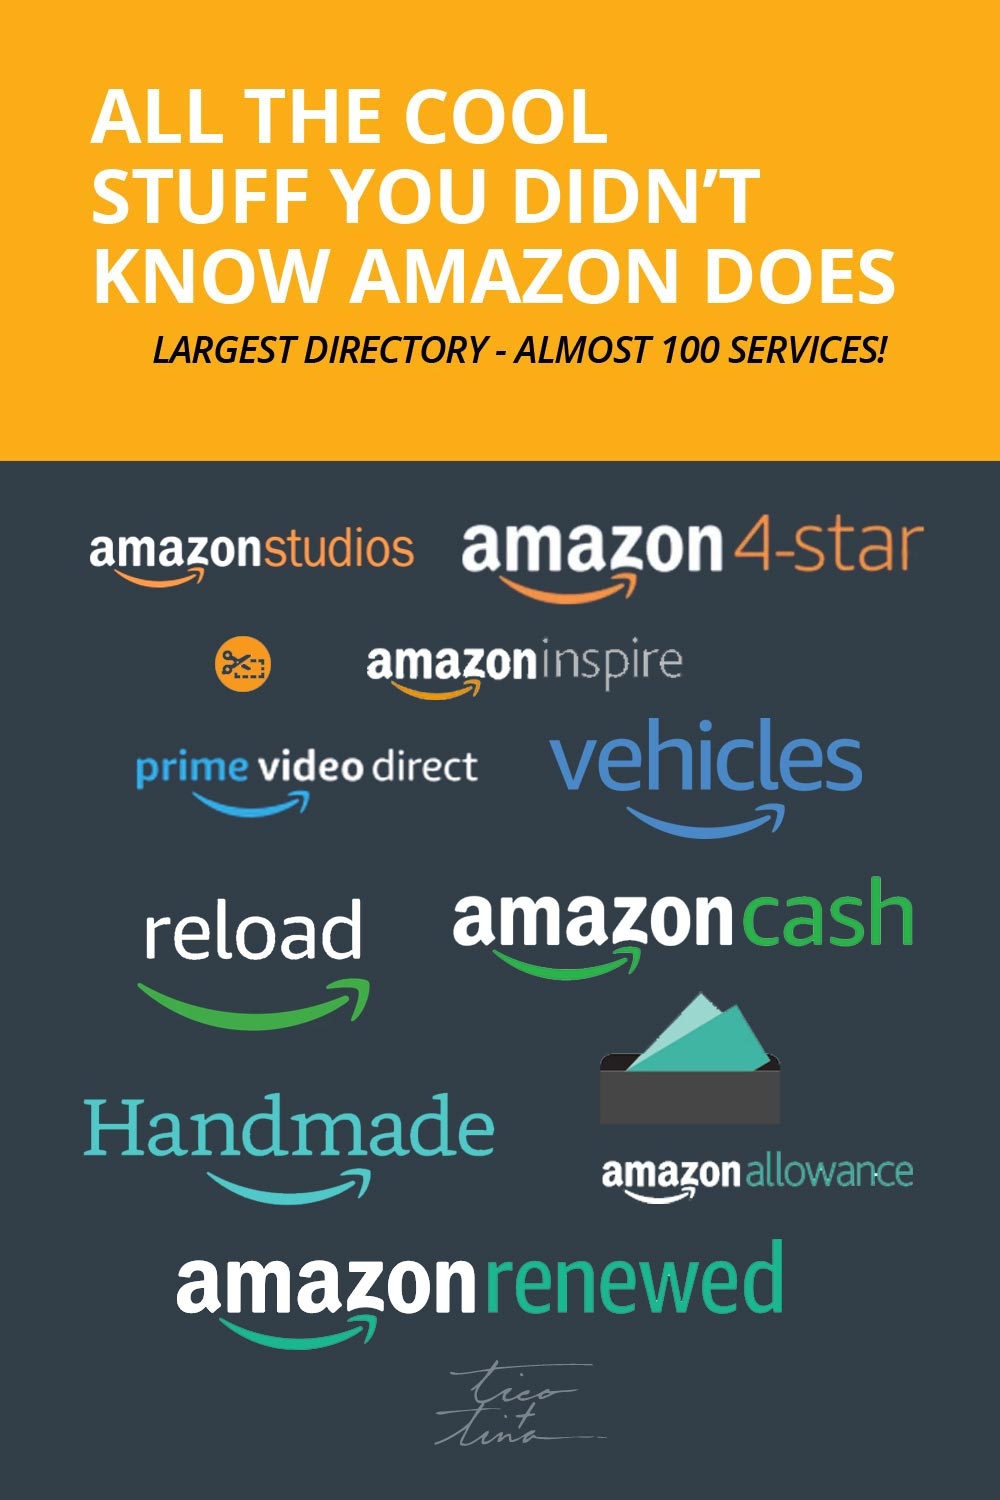 All the Cool Amazon Services You Haven't Heard of (including